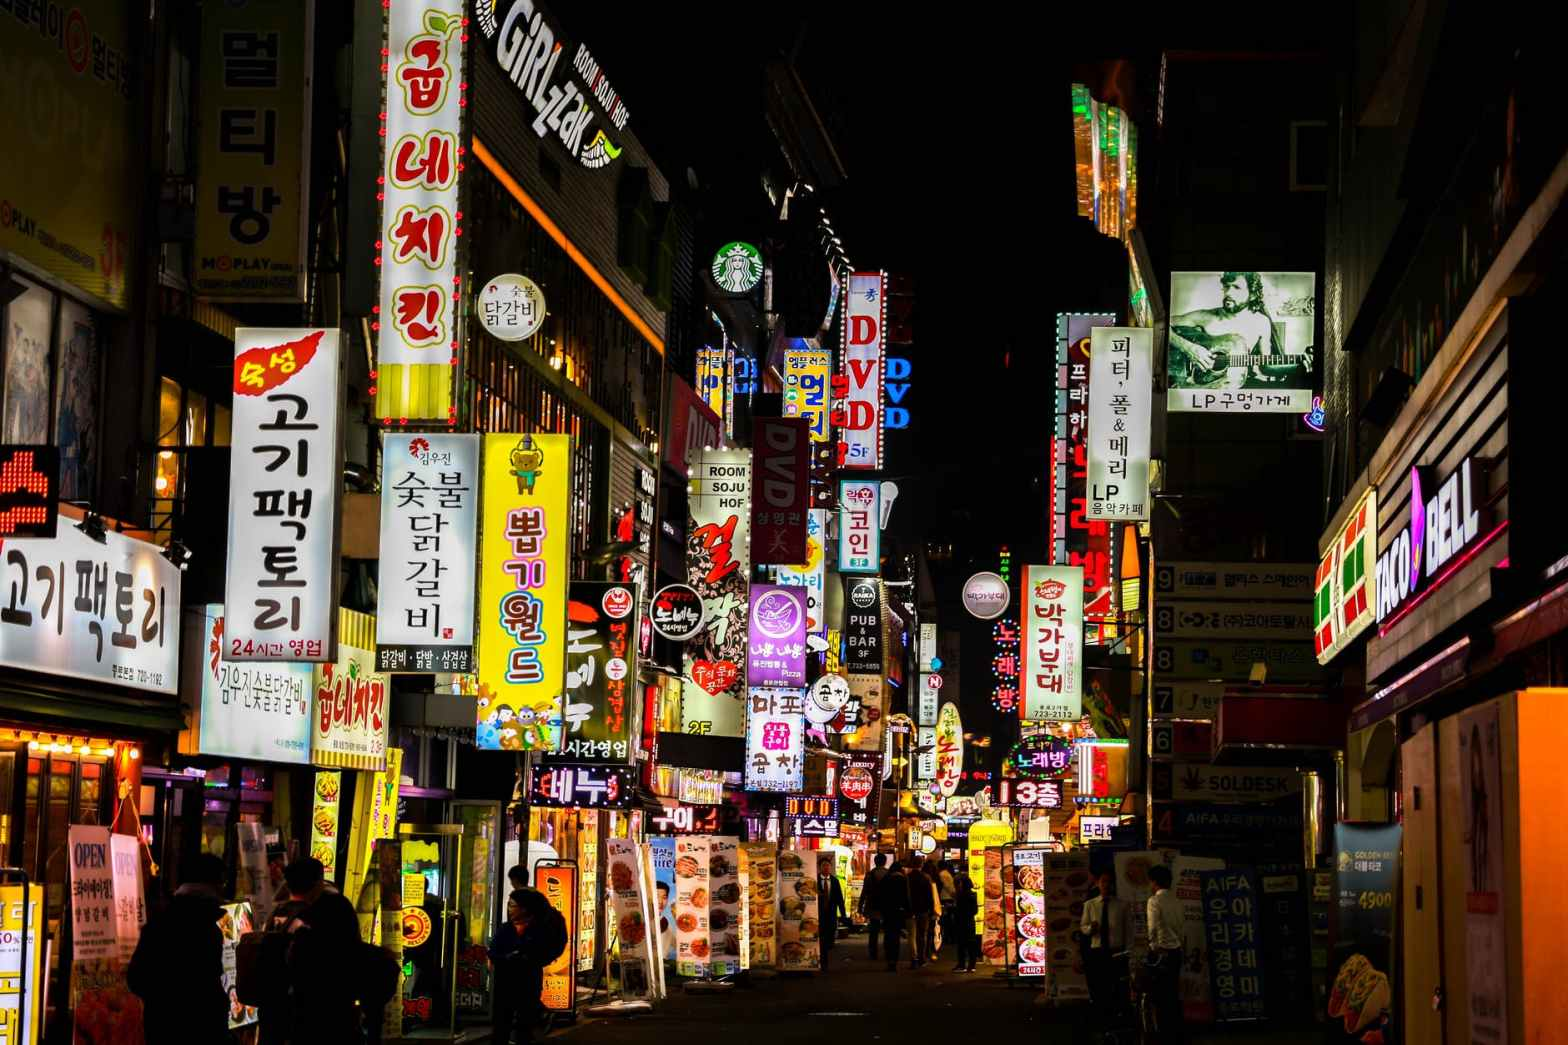 Korean signs lighting up a dark street